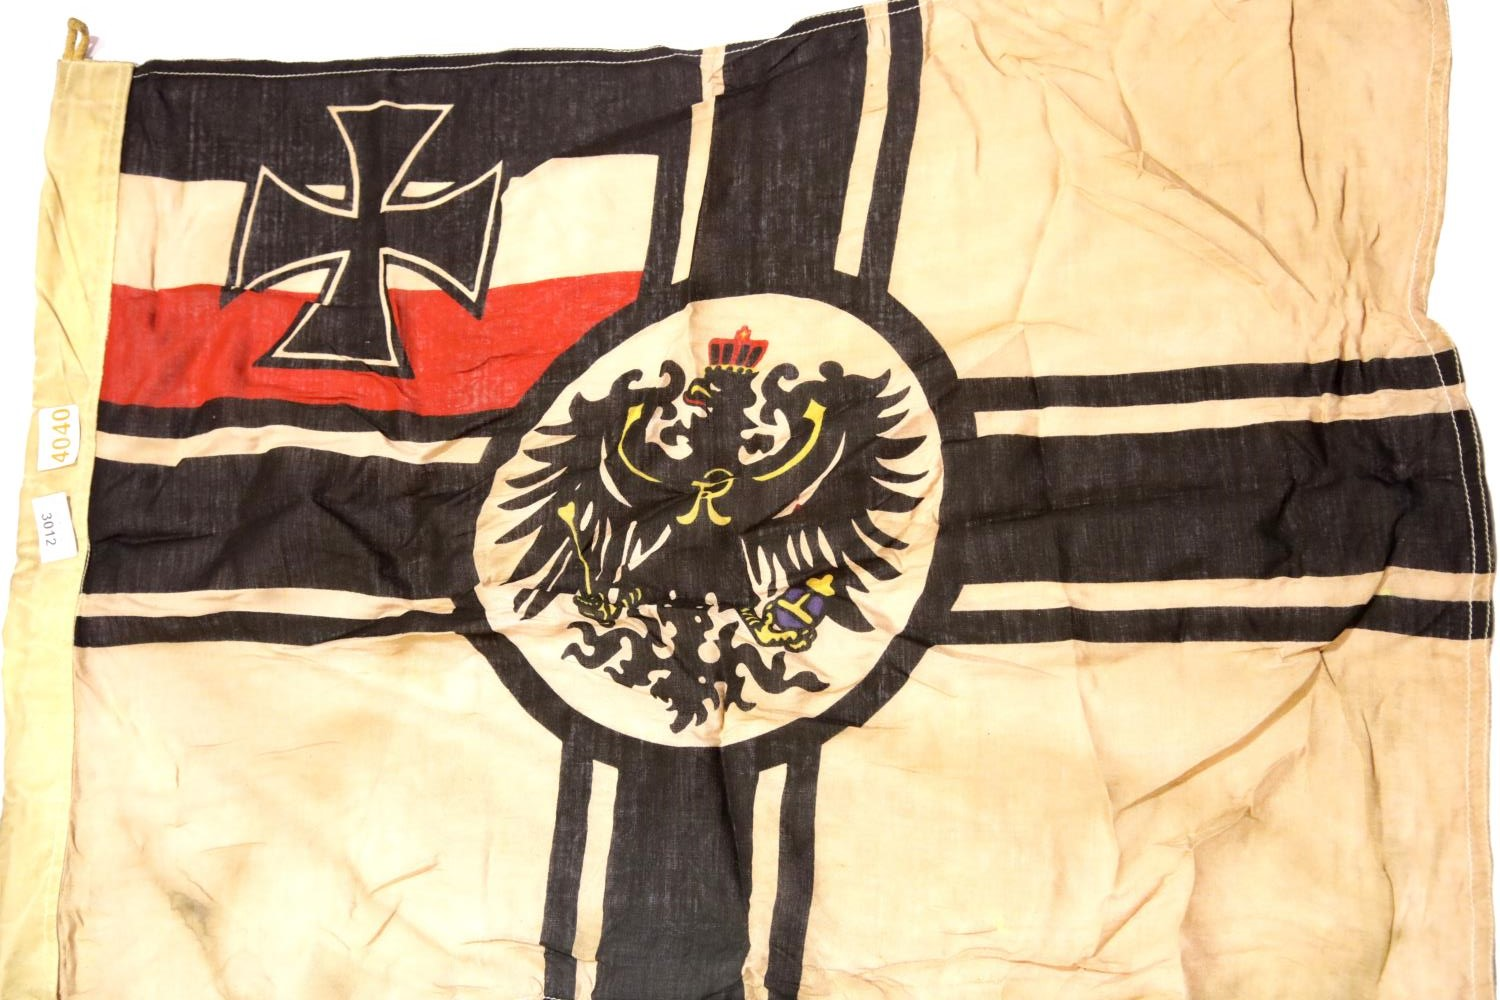 Lot 3012 - German Imperial WWI type flag, 90 x 60 cm. P&P Group 1 (£14+VAT for the first lot and £1+VAT for